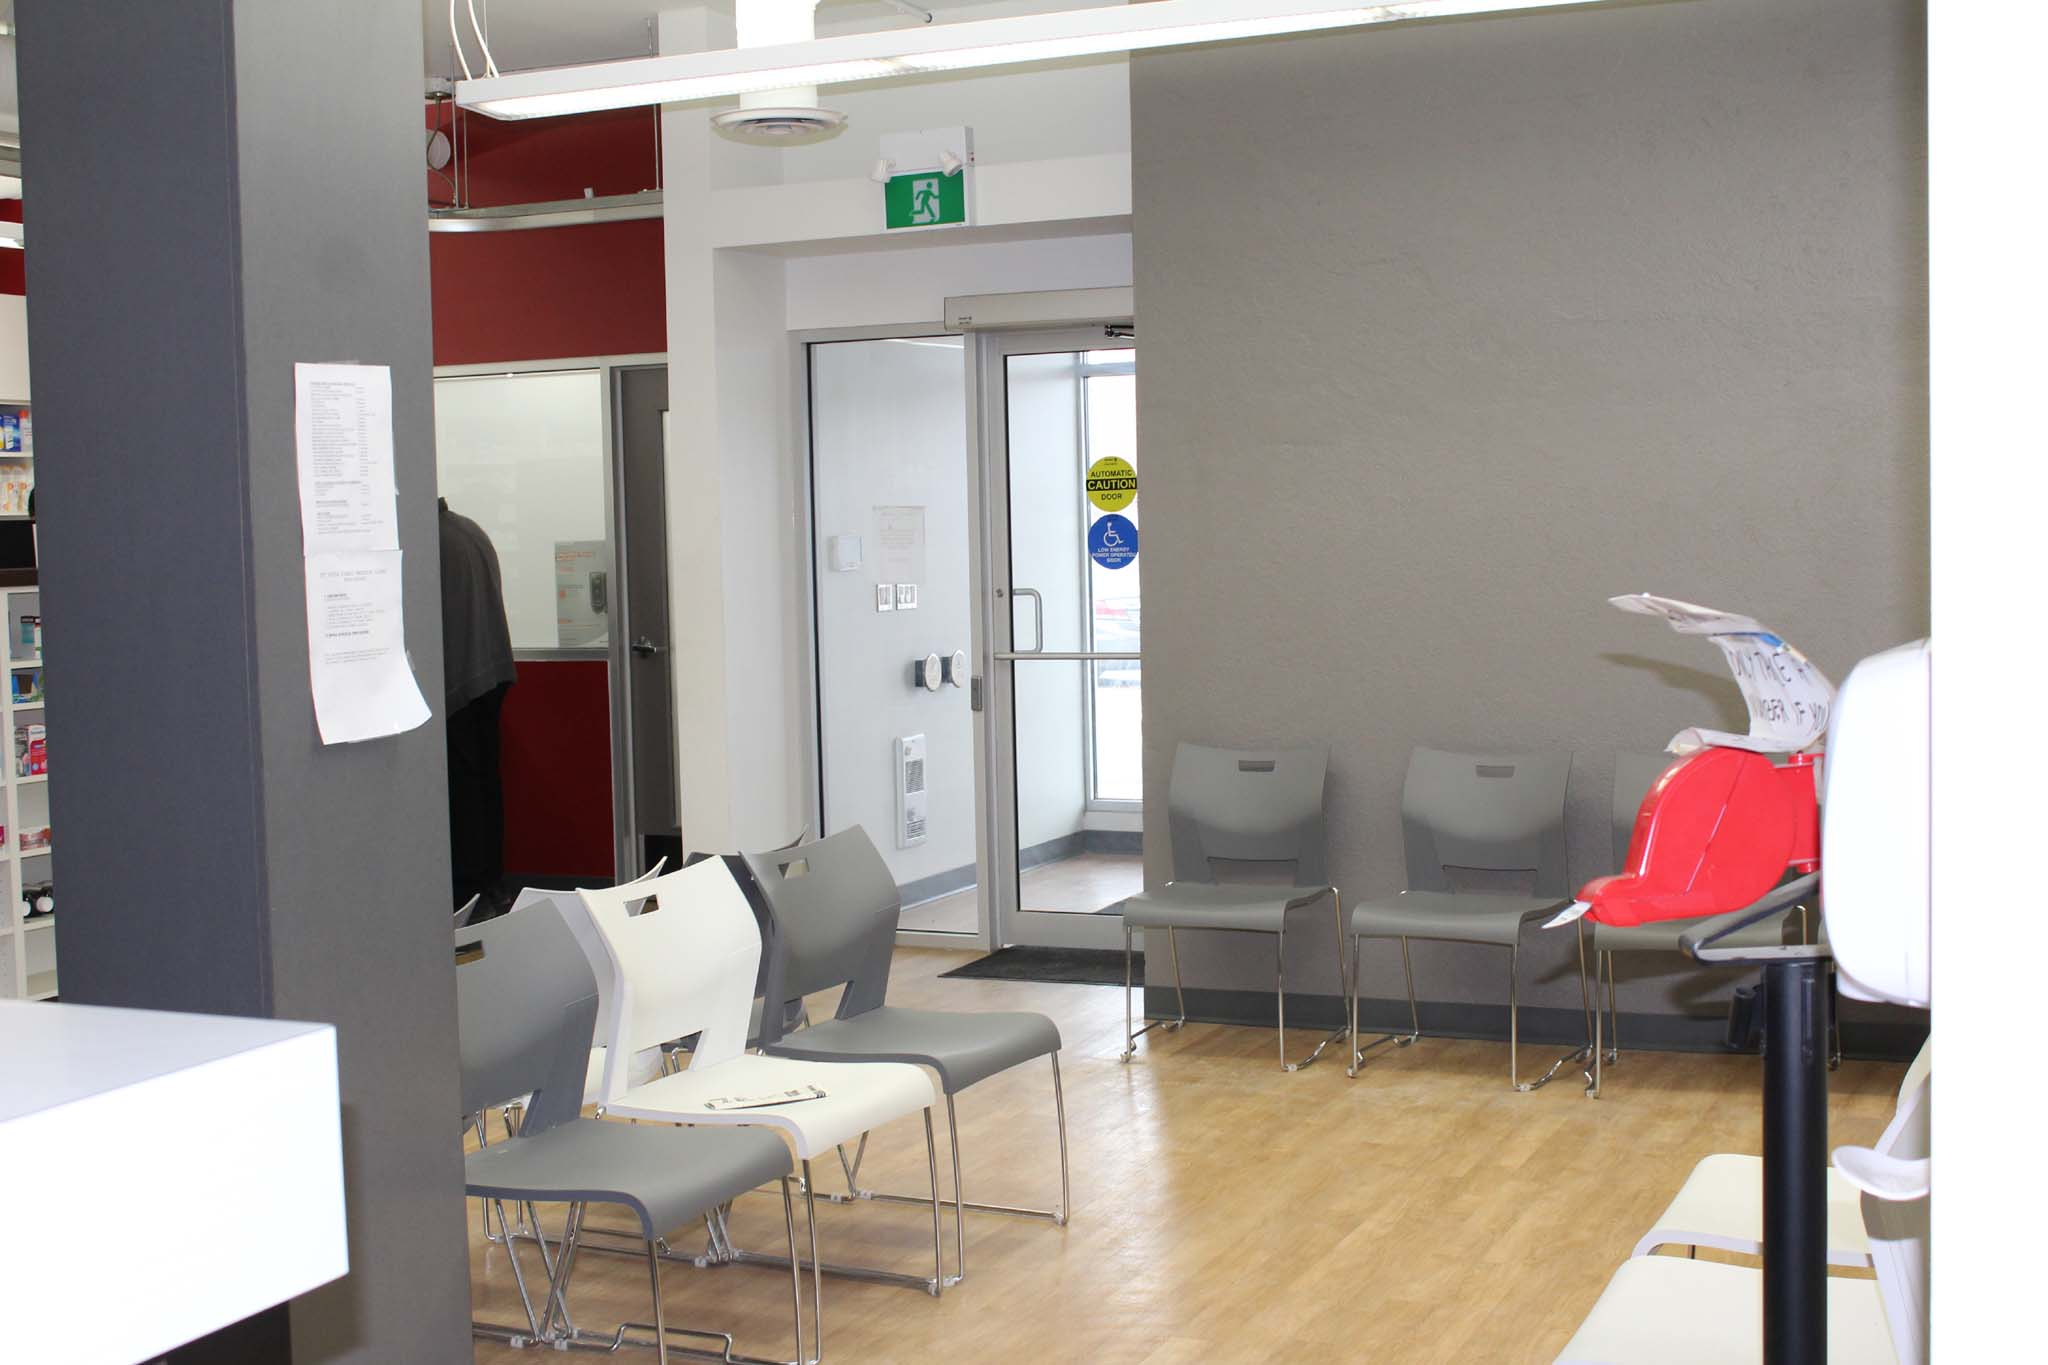 St. Vital Family Medical Clinic - Waiting Room